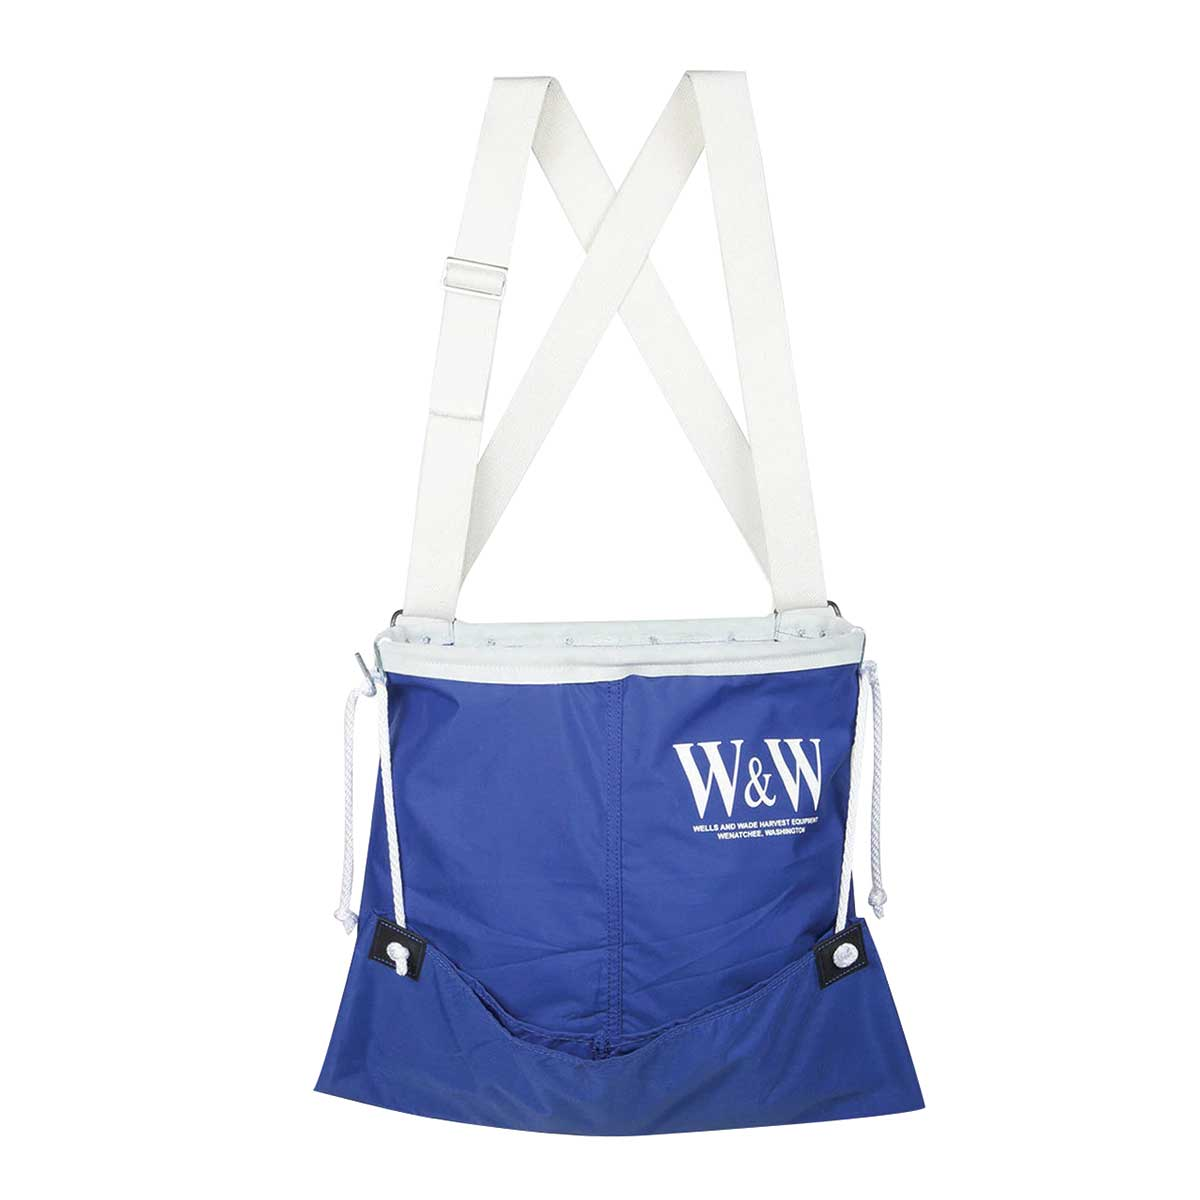 Wells & Wade Cordura Fruit Picking Bag